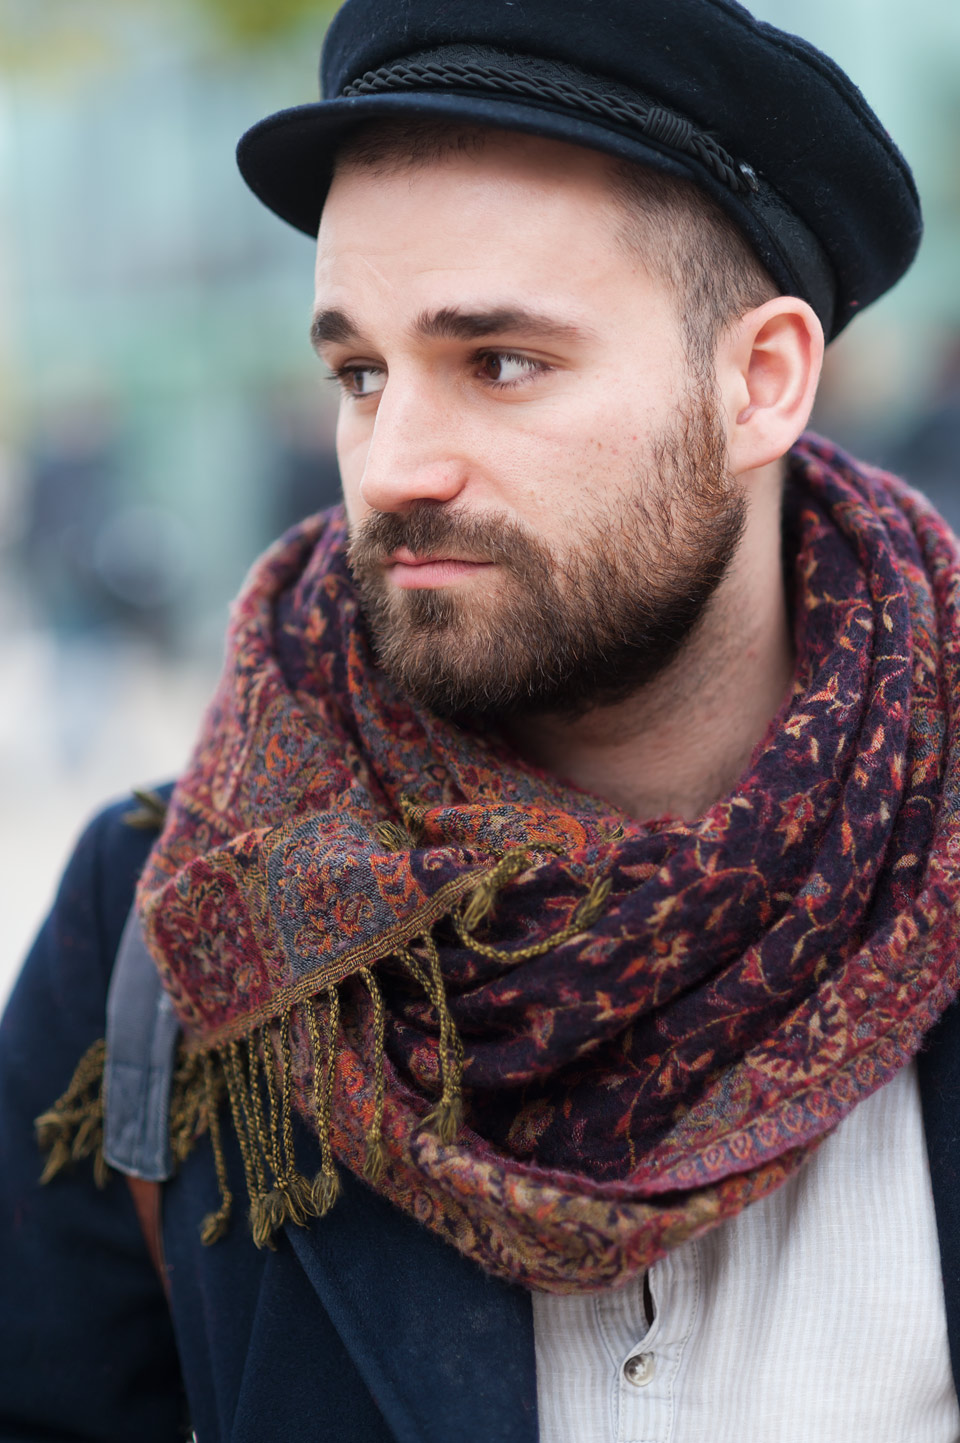 khaled_portrait.jungfernstieg_hamburg.fashionjunk_streetstyle_fashion_blog